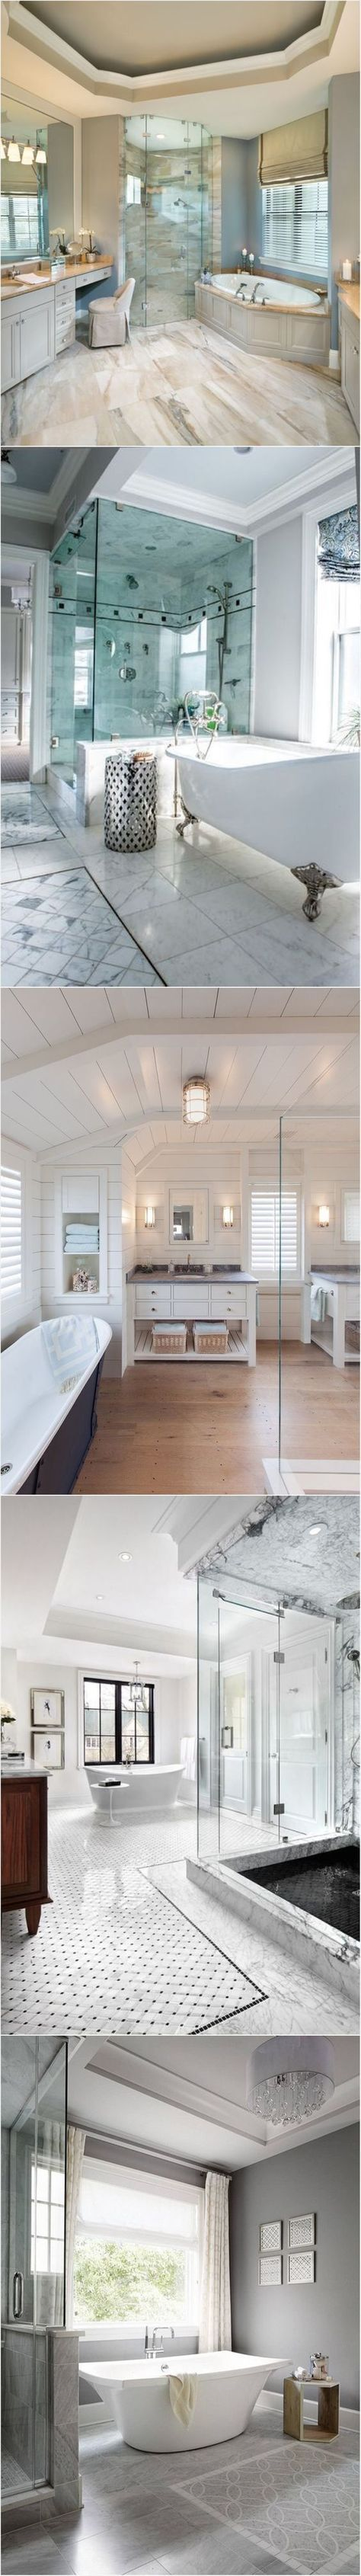 Bad ideen mit shiplap  best ensuite images on pinterest  bathroom bathrooms and